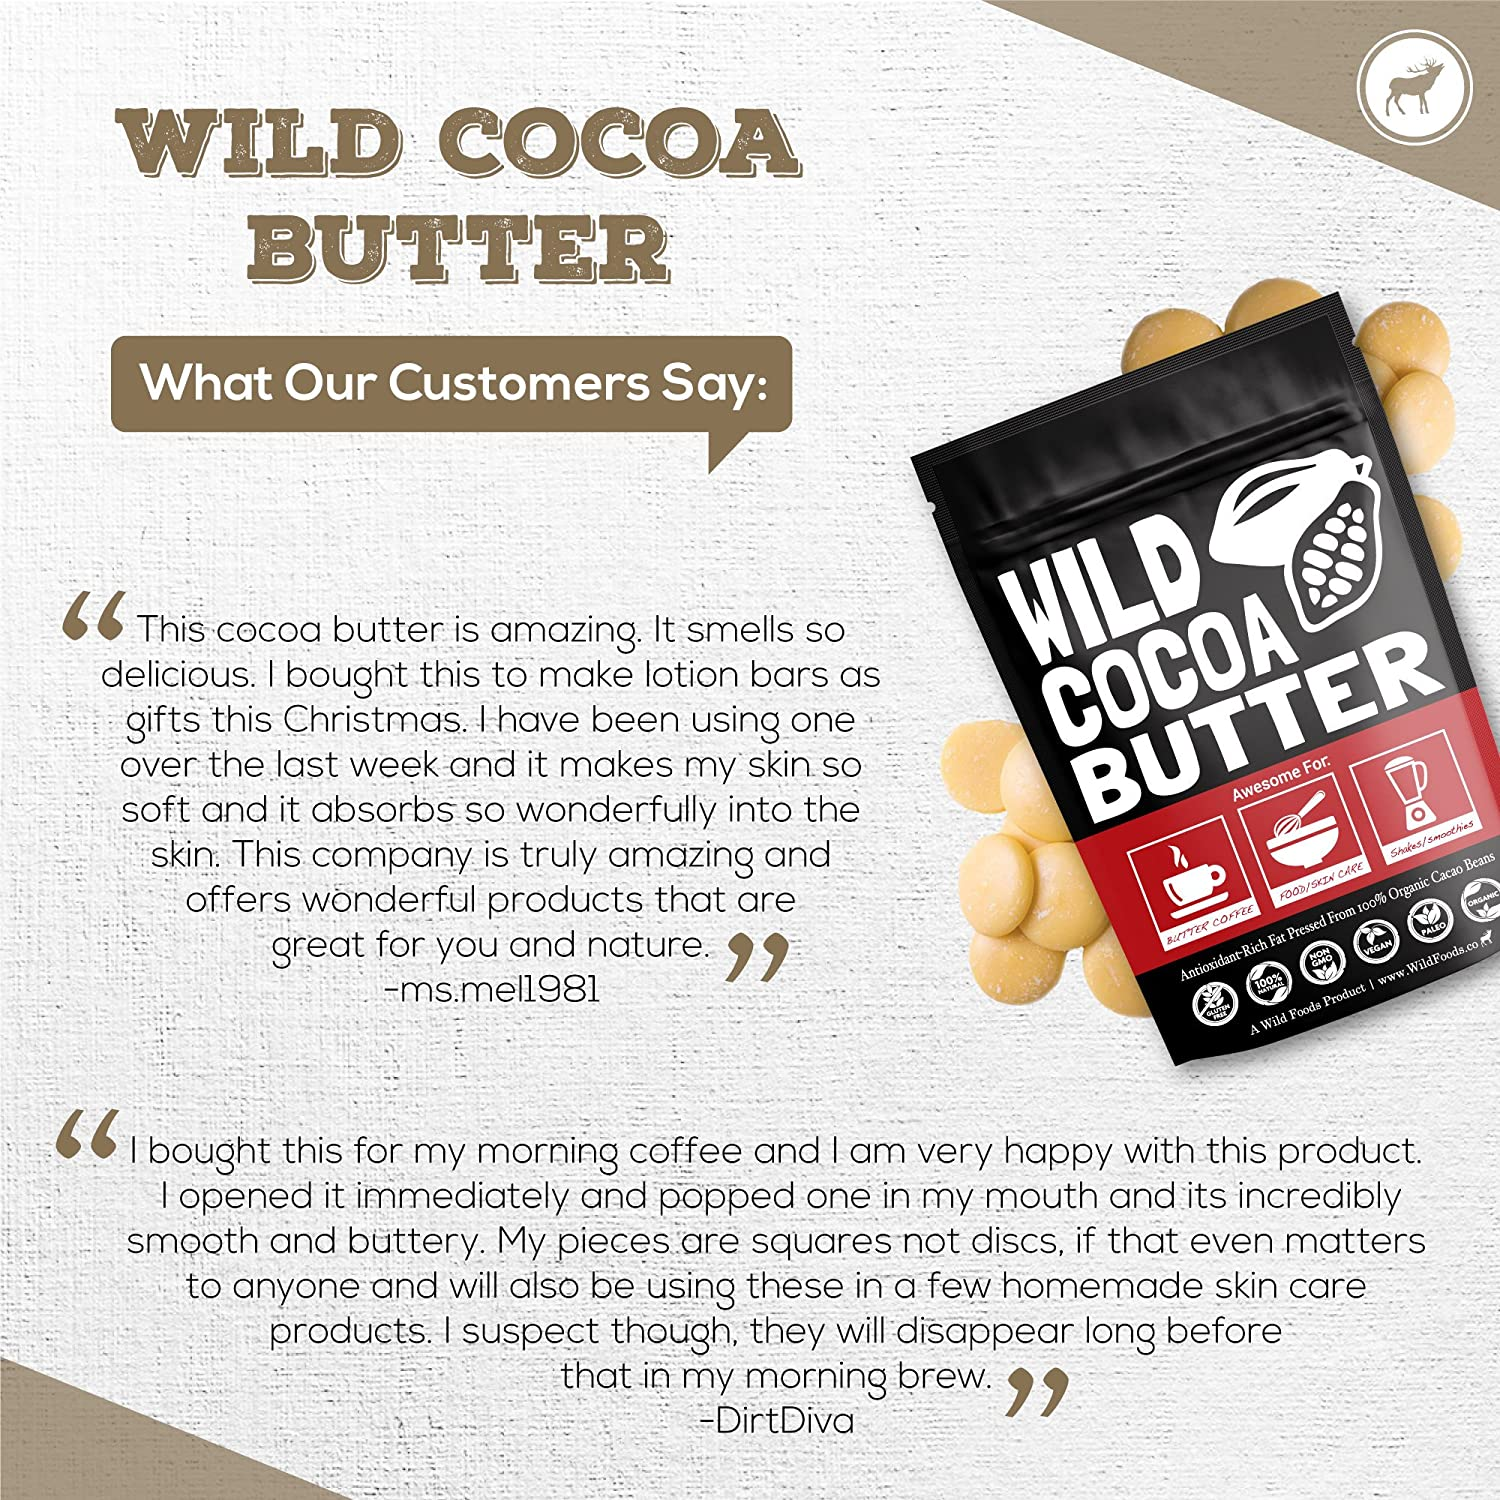 Raw Organic Cocoa Butter Wafers from Peru | Unrefined, Non-Deodorized, Food Grade, Plant-Based, Paleo, Vegan Body Butter - Great for DIY Recipes, Baking, Keto Coffee, Skincare and Haircare (16 oz) : Beauty